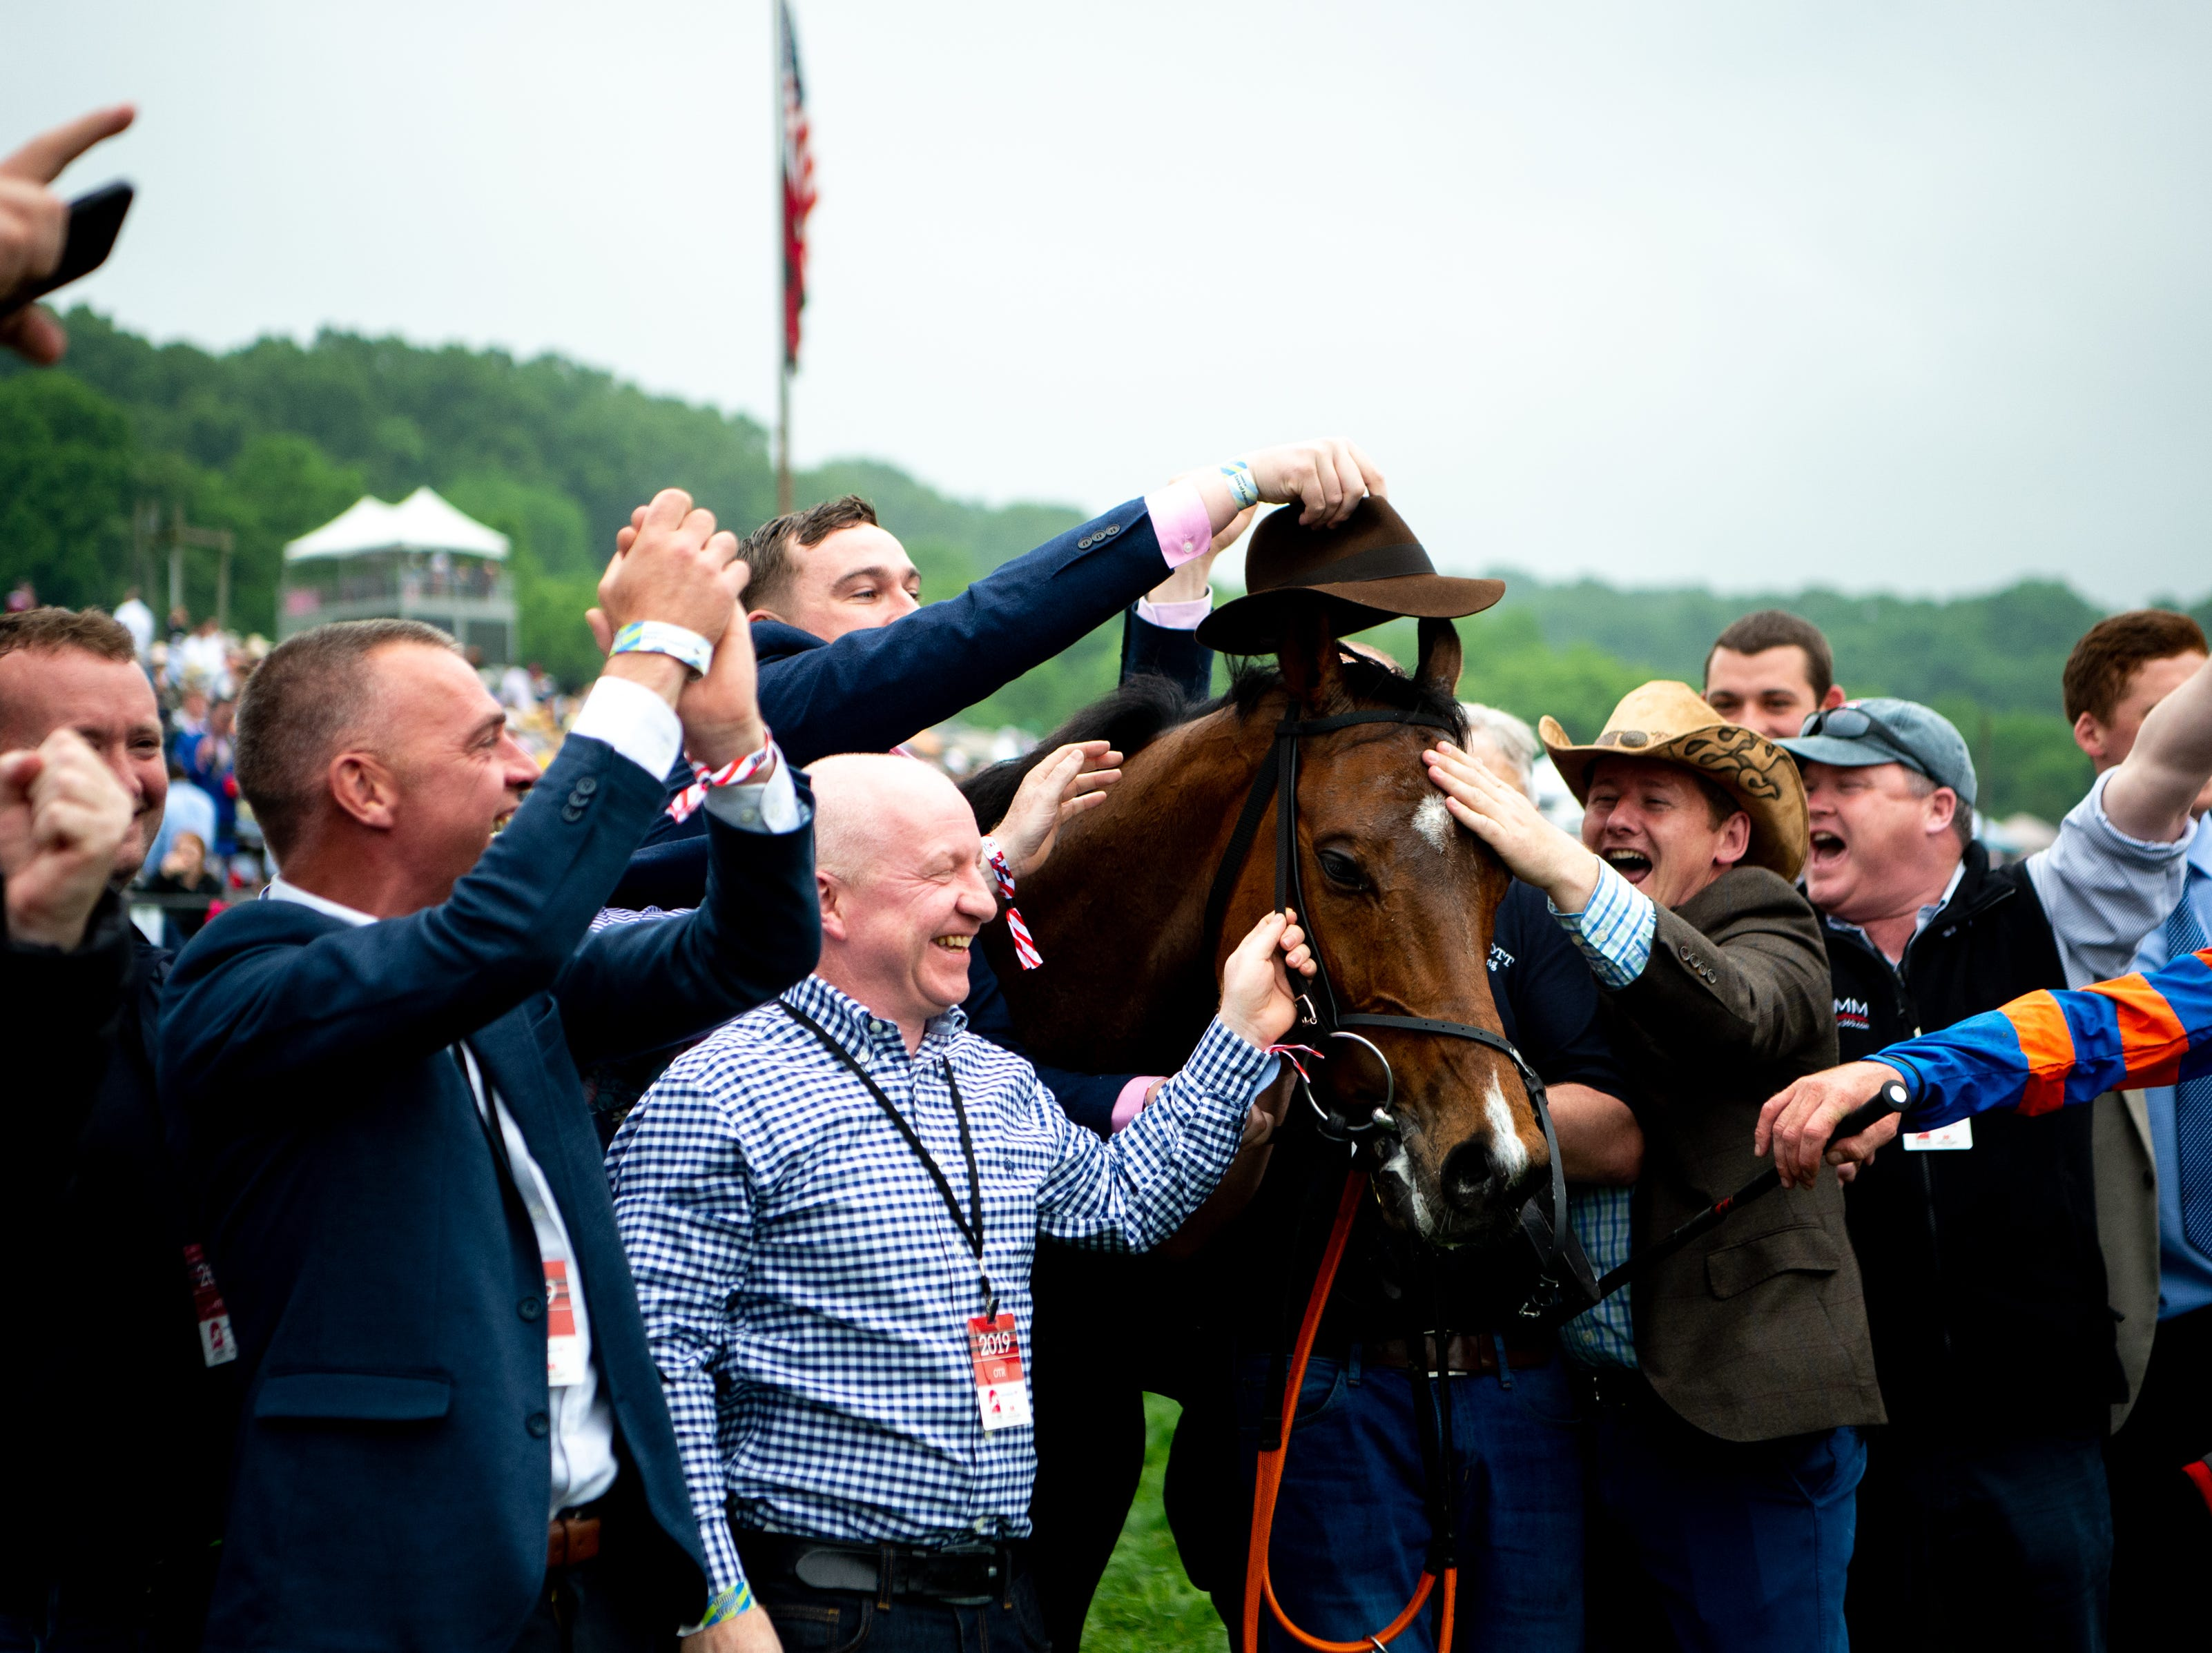 Markhan is celebrated after winning the fifth race of the Iroquois Steeplechase at Percy Warner Park Saturday, May 11, 2019, in Nashville, Tenn.